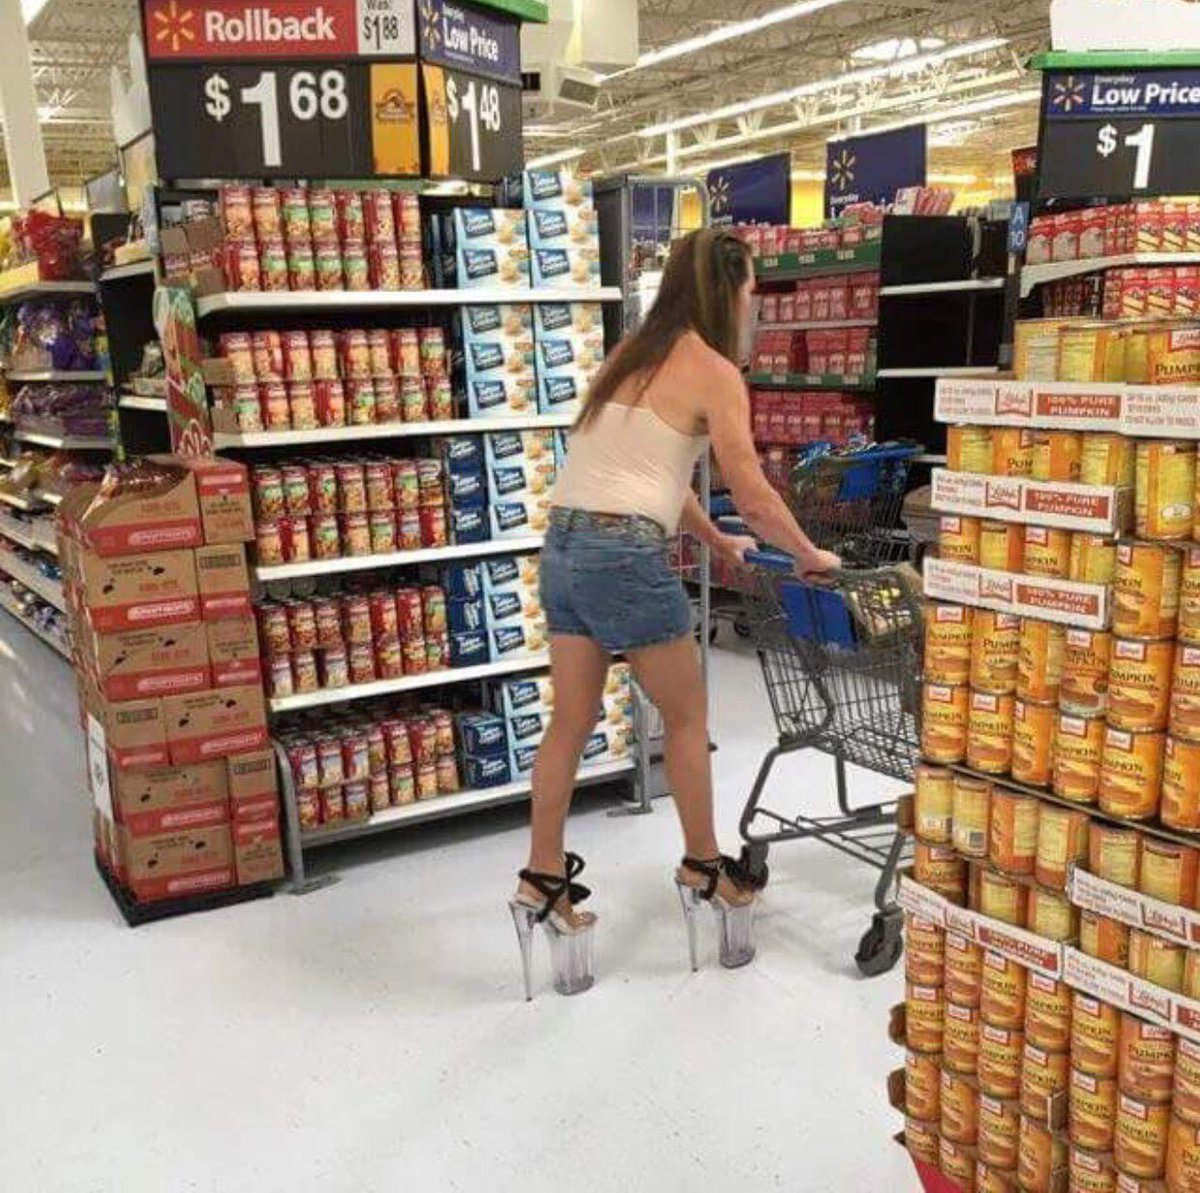 When you have to buy groceries at 6 but the Gaga concert is at 7 https://t.co/ChwEOY35Ib